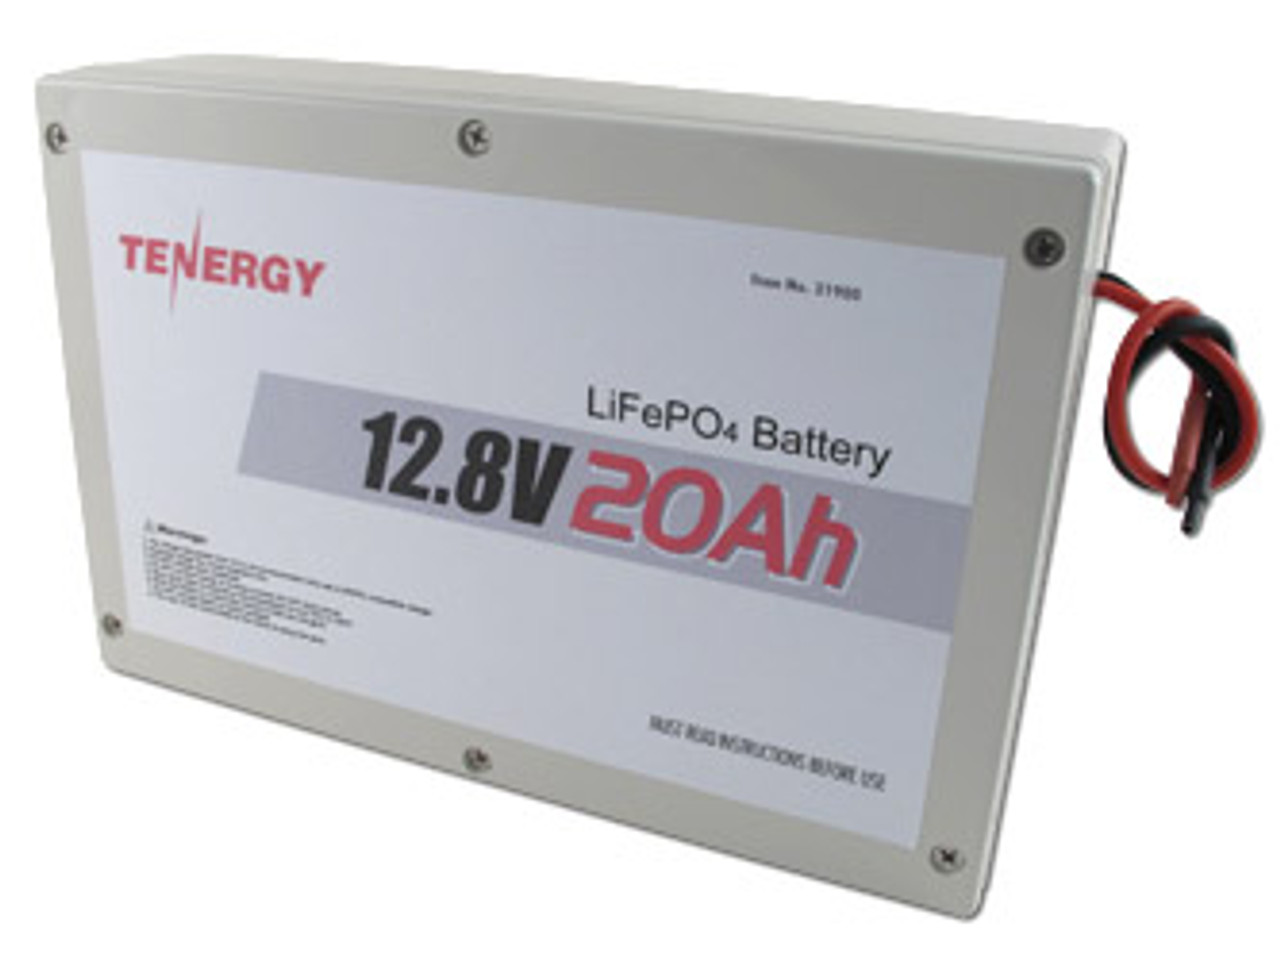 AT: Tenergy 12.8V 60Ah LiFePO4 Battery Pack with PCB & Bare Leads (DGR)